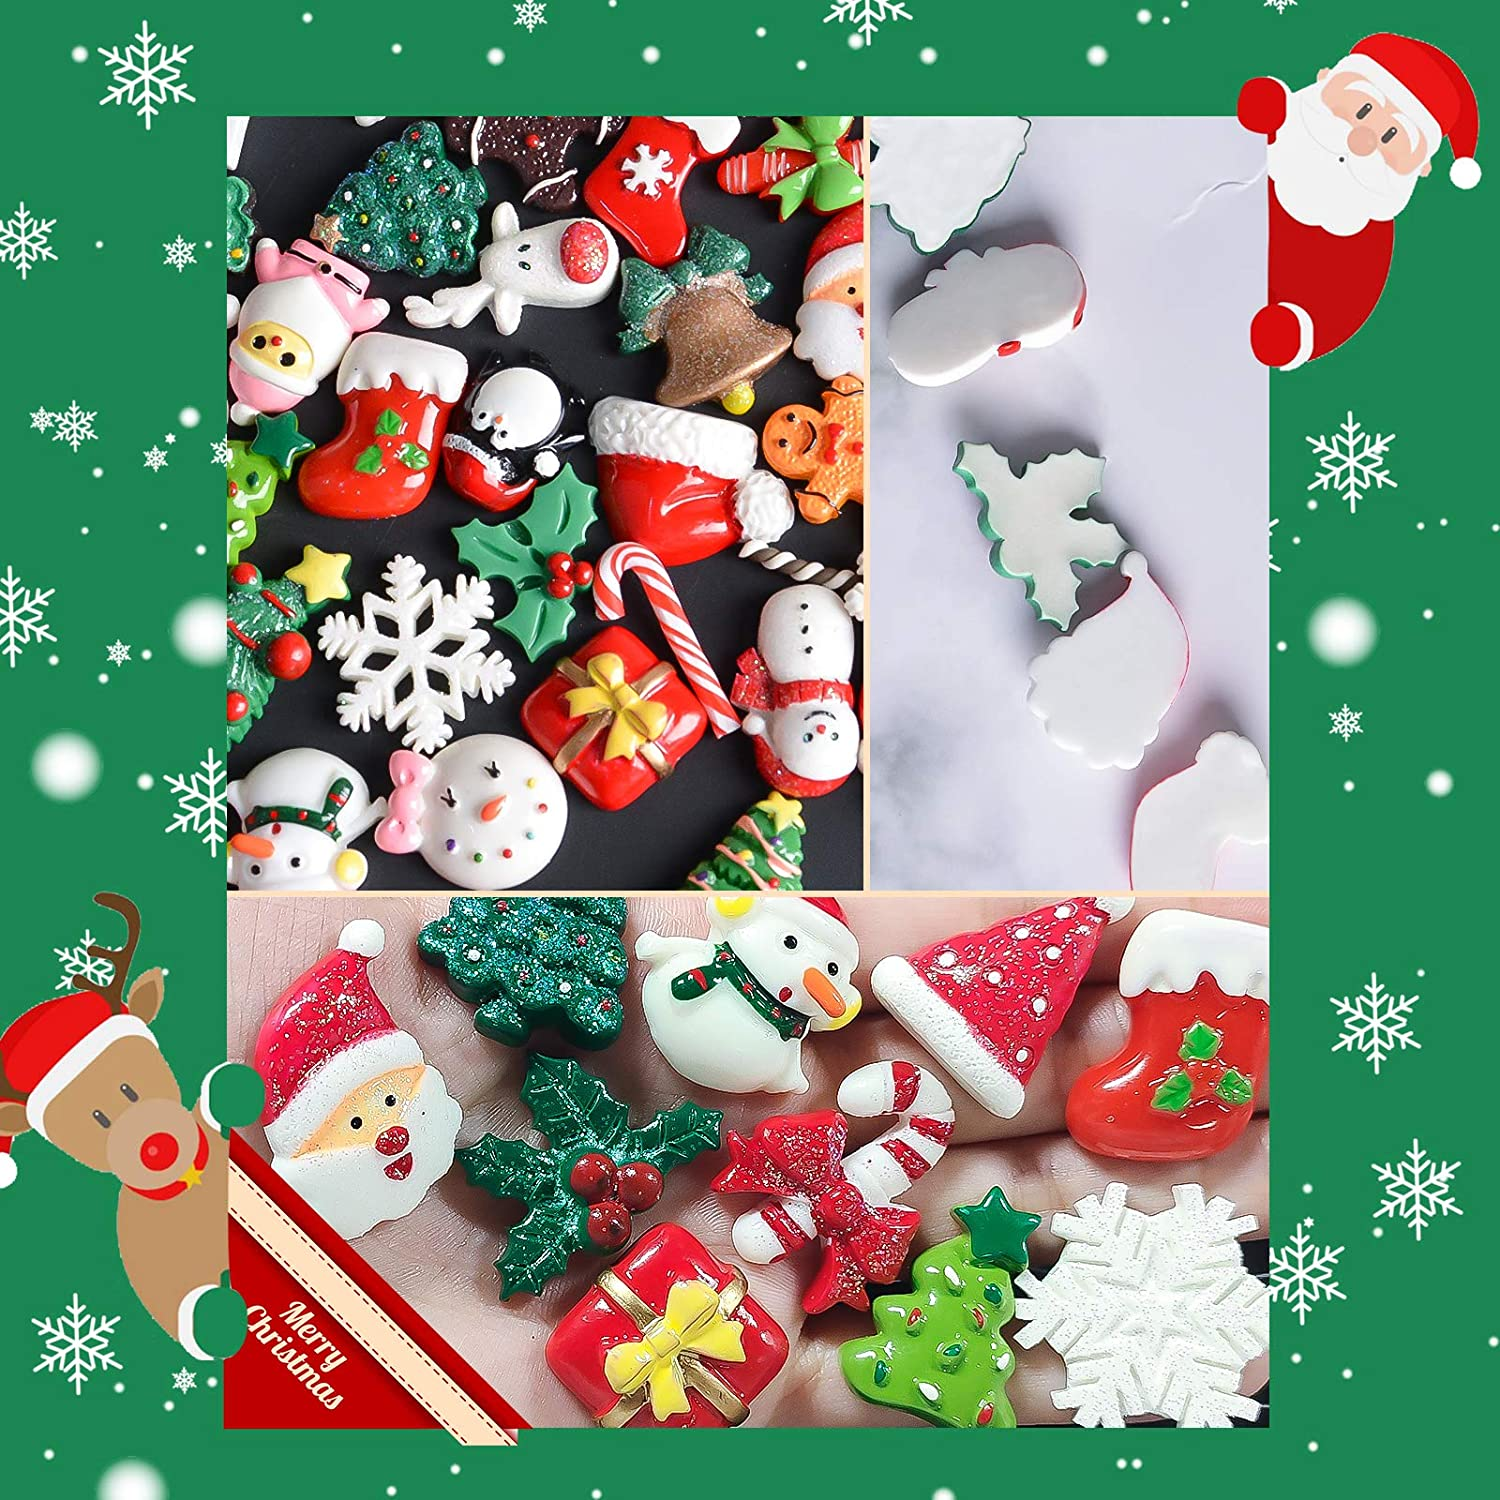 Kaloraly Christmas Assorted Craft Resin Ornaments Miniature Ornaments Santa Snowman Tree Bell Resin Decoration for Craft Making Ornament Scrapbooking DIY Crafts 50Pcs